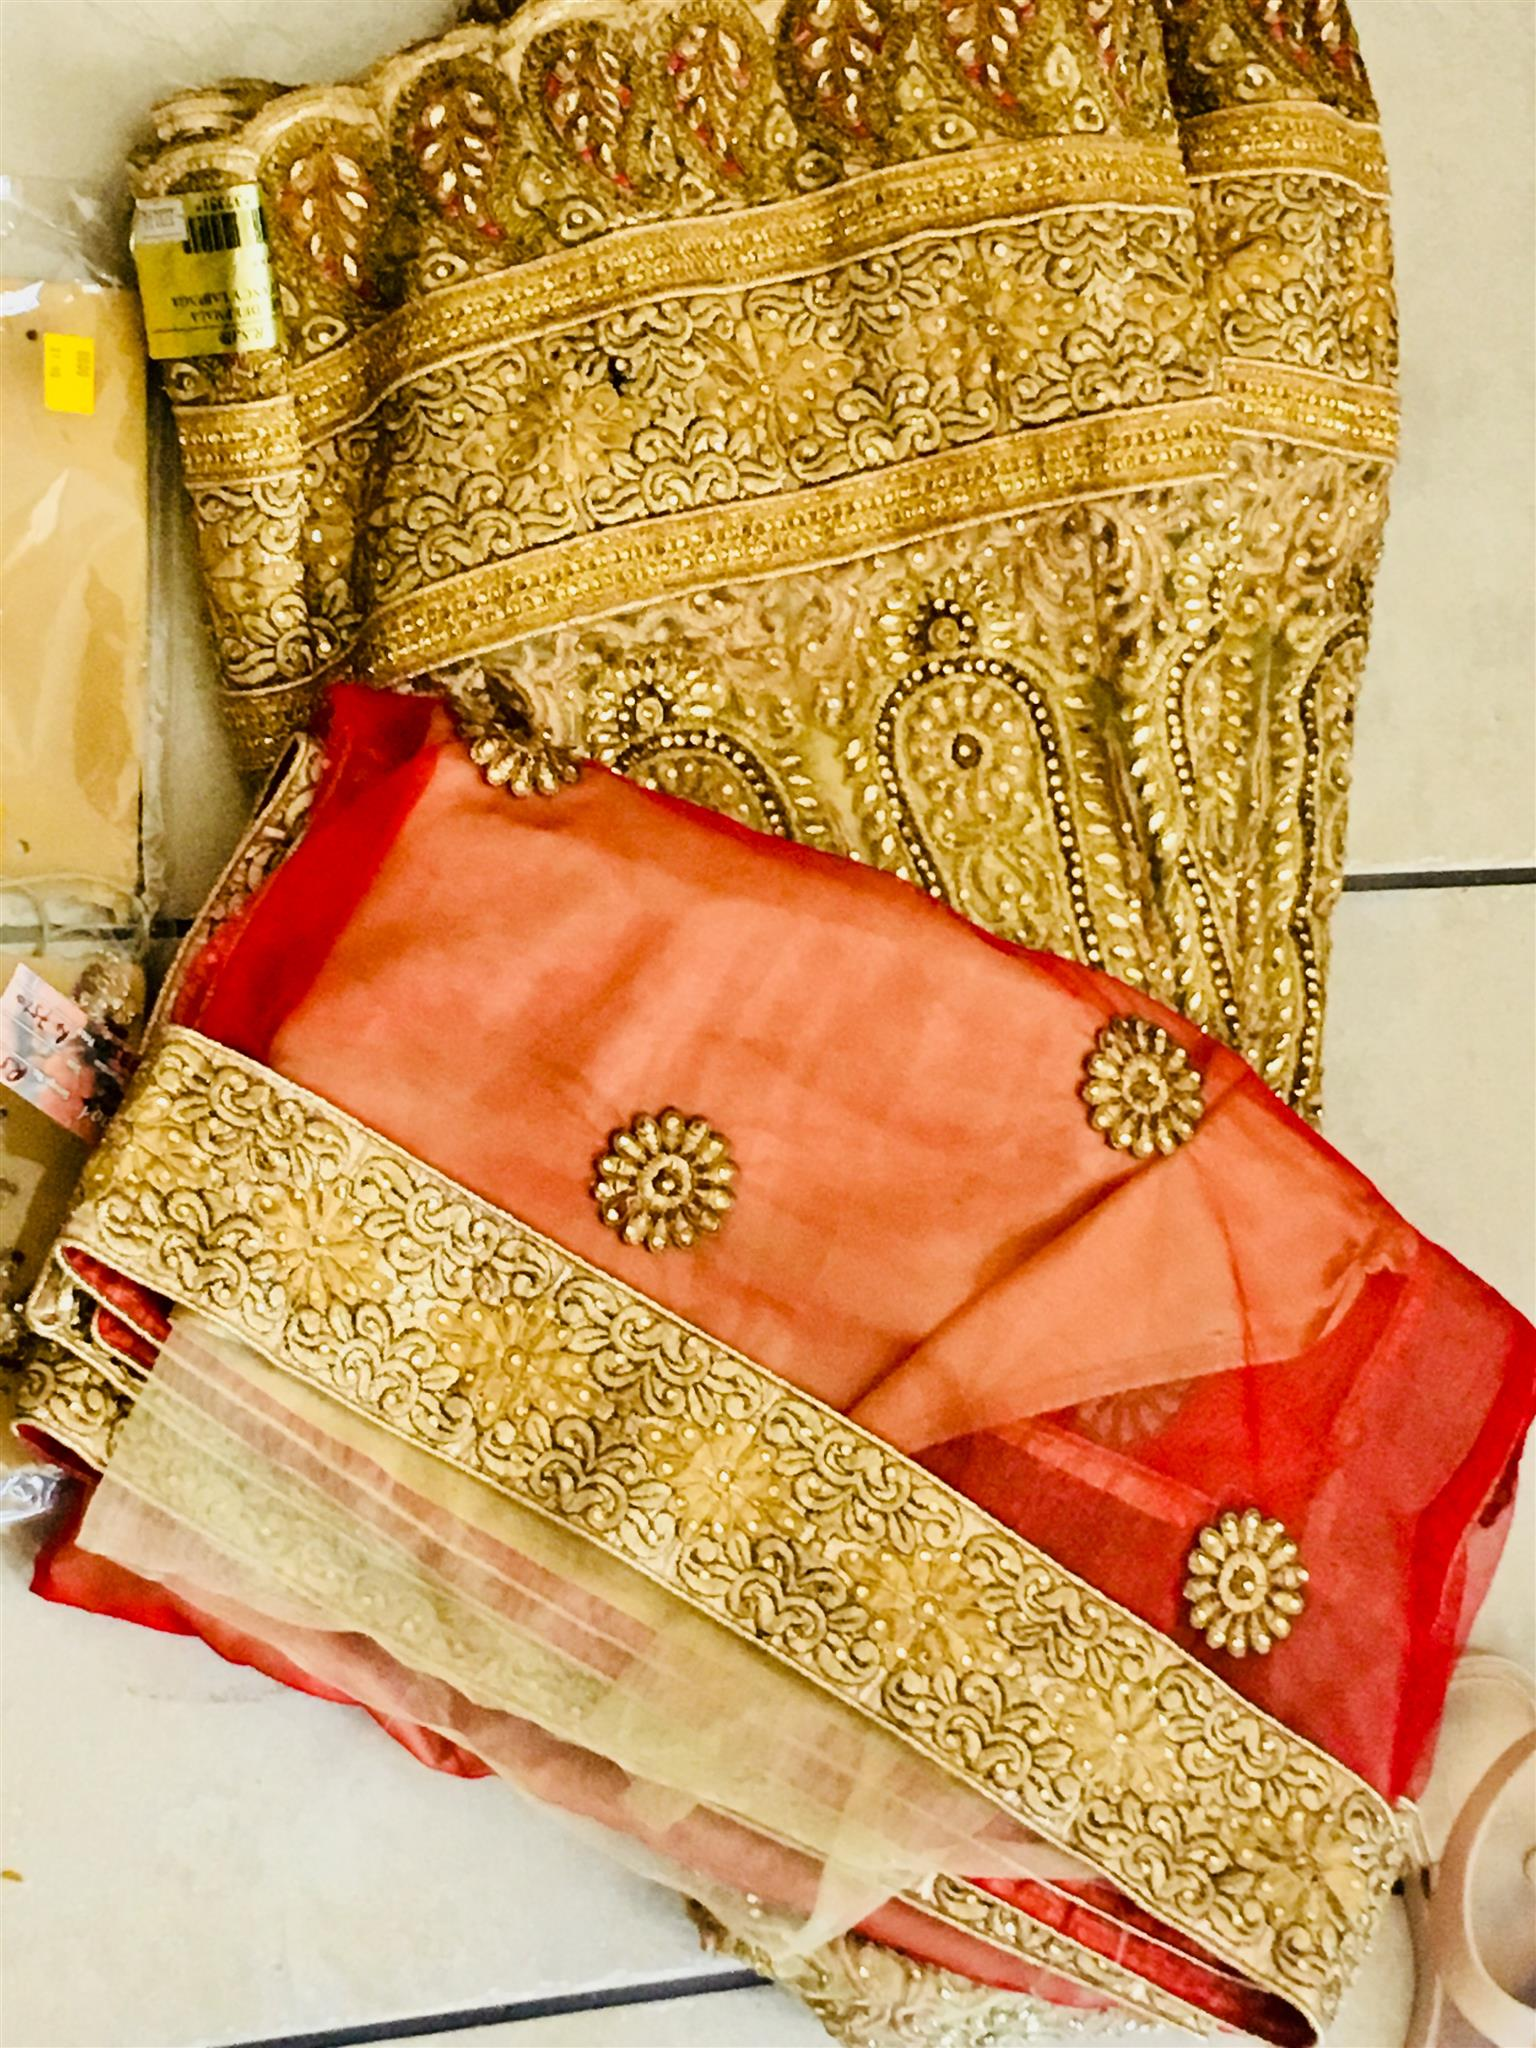 Bridal Garment for sale includes Jewelry set